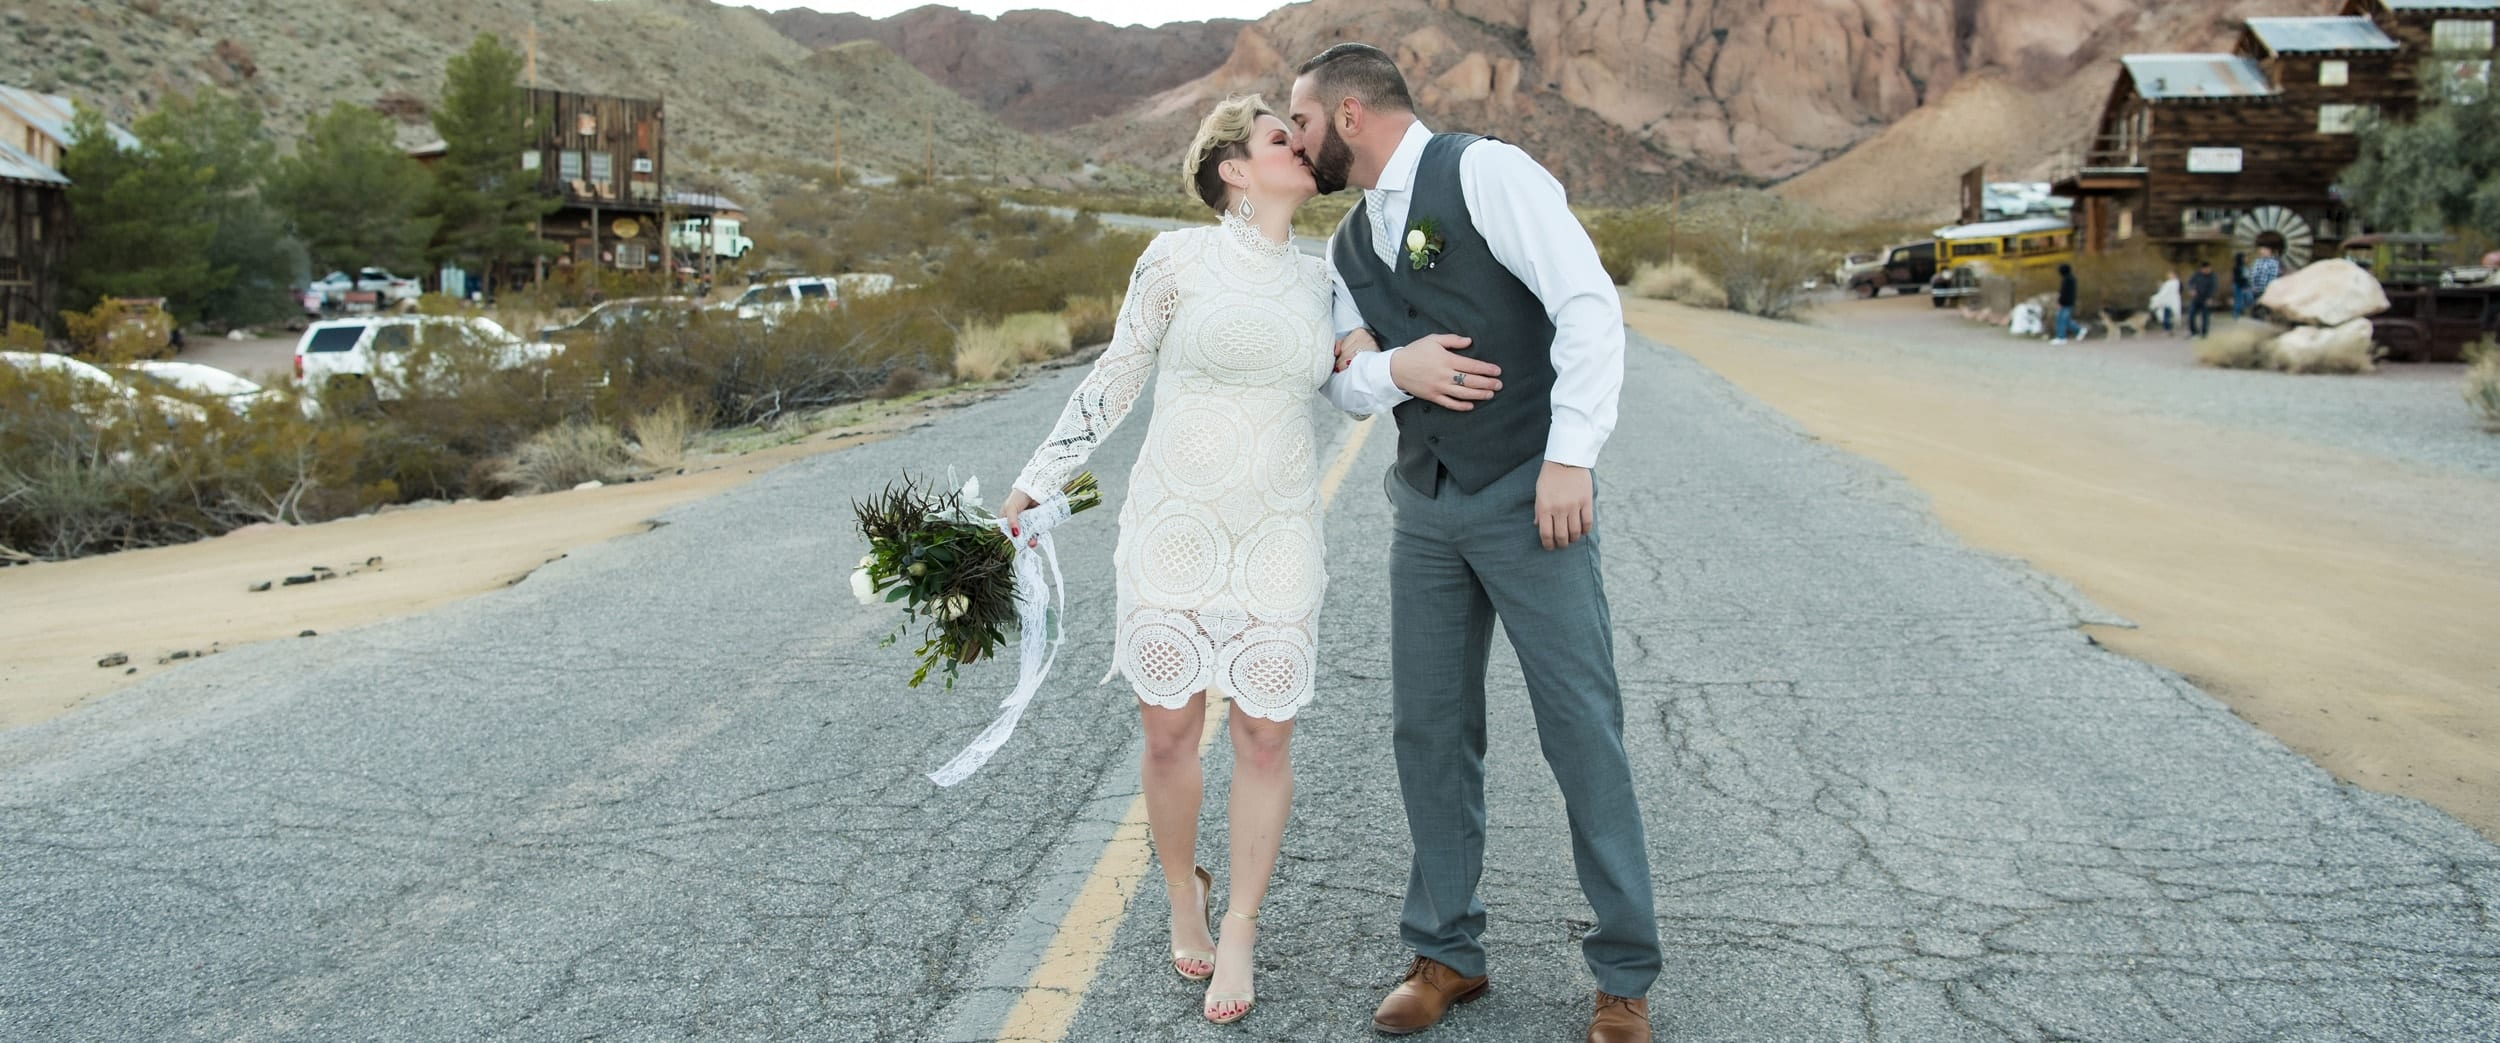 Bride and groom kissing in the middle of a deserted road.